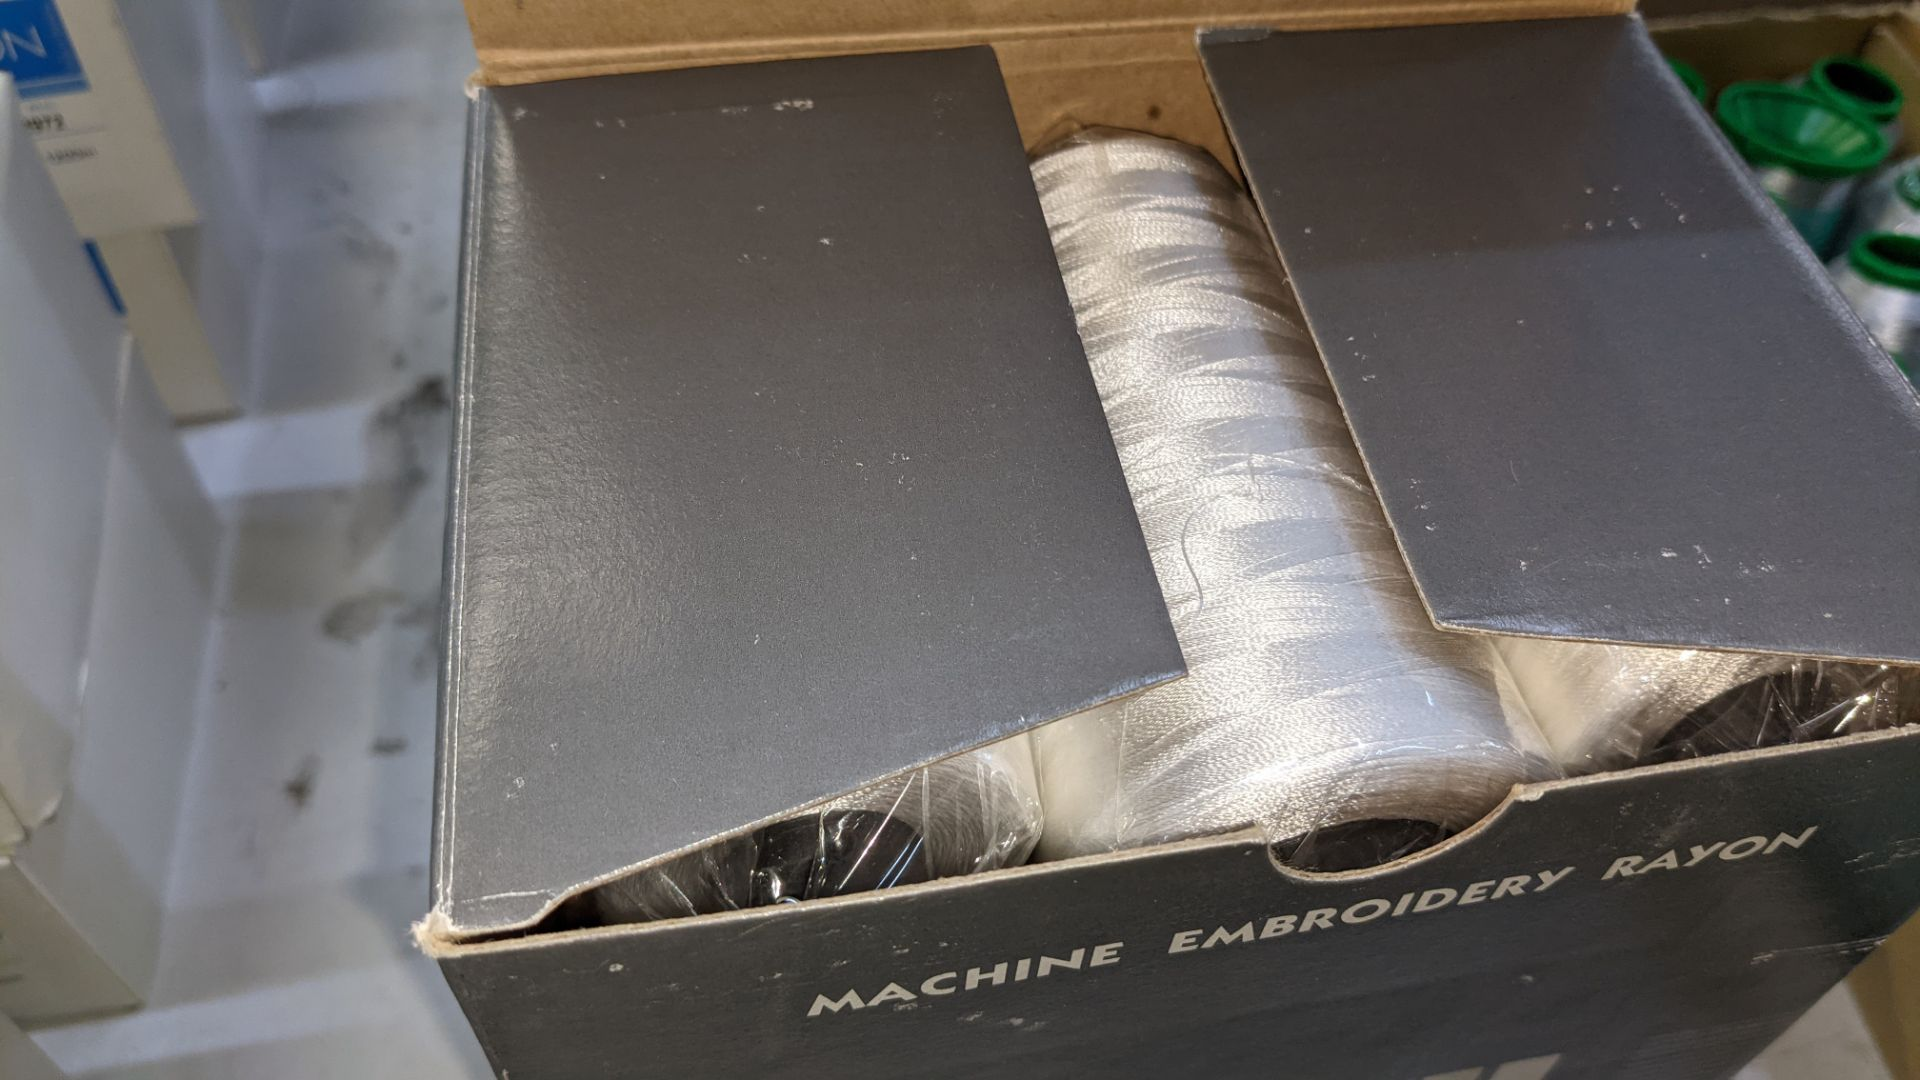 12 boxes of Ecofil rayon machine embroidery thread, all in white - Image 6 of 8